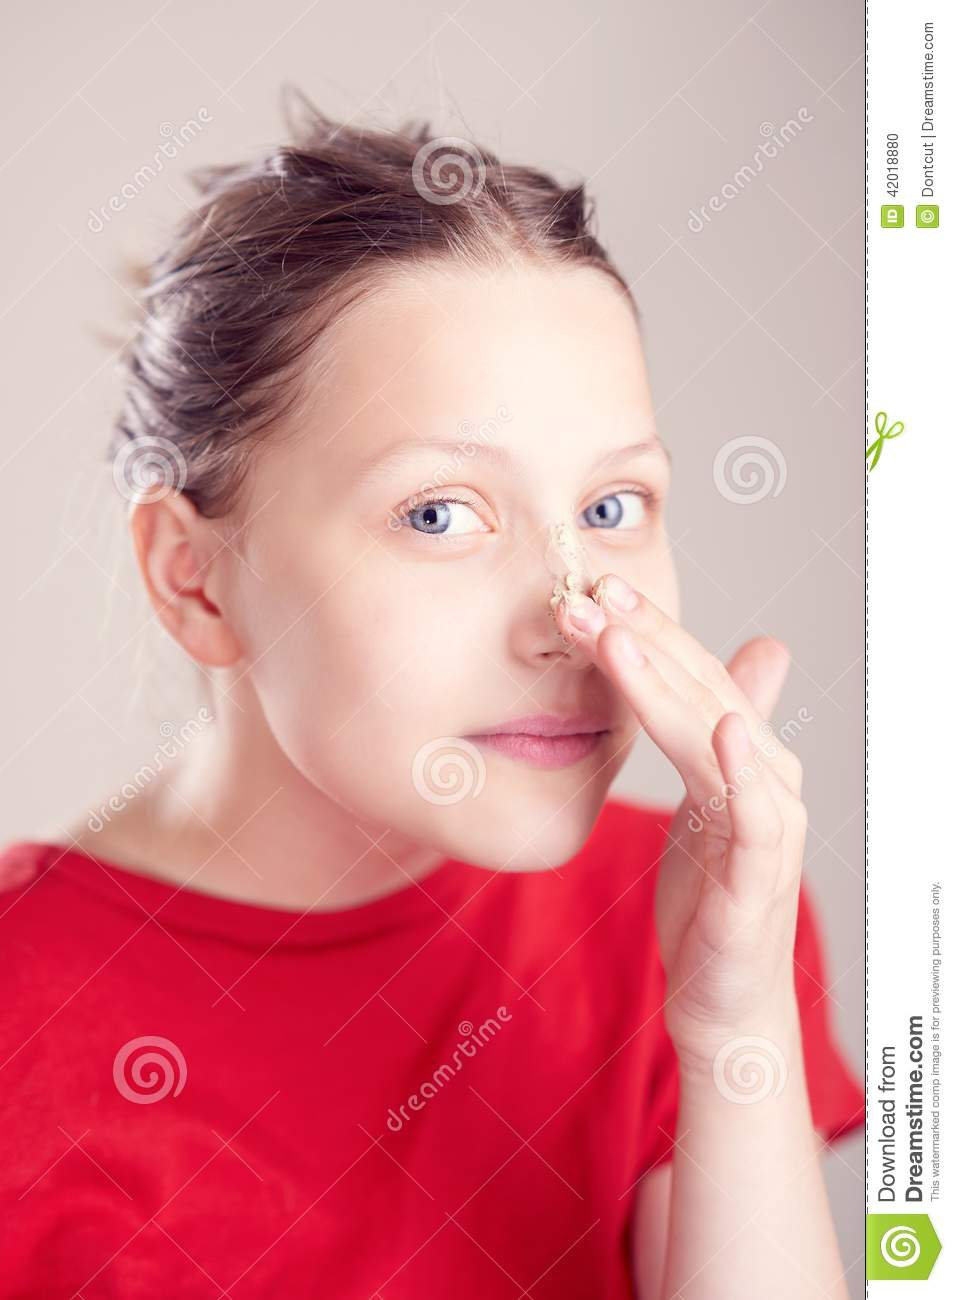 Happy Teen By Crumbling Wall Stock Image: Happy Teen Girl With Scrub Mask On Her Face Stock Photo